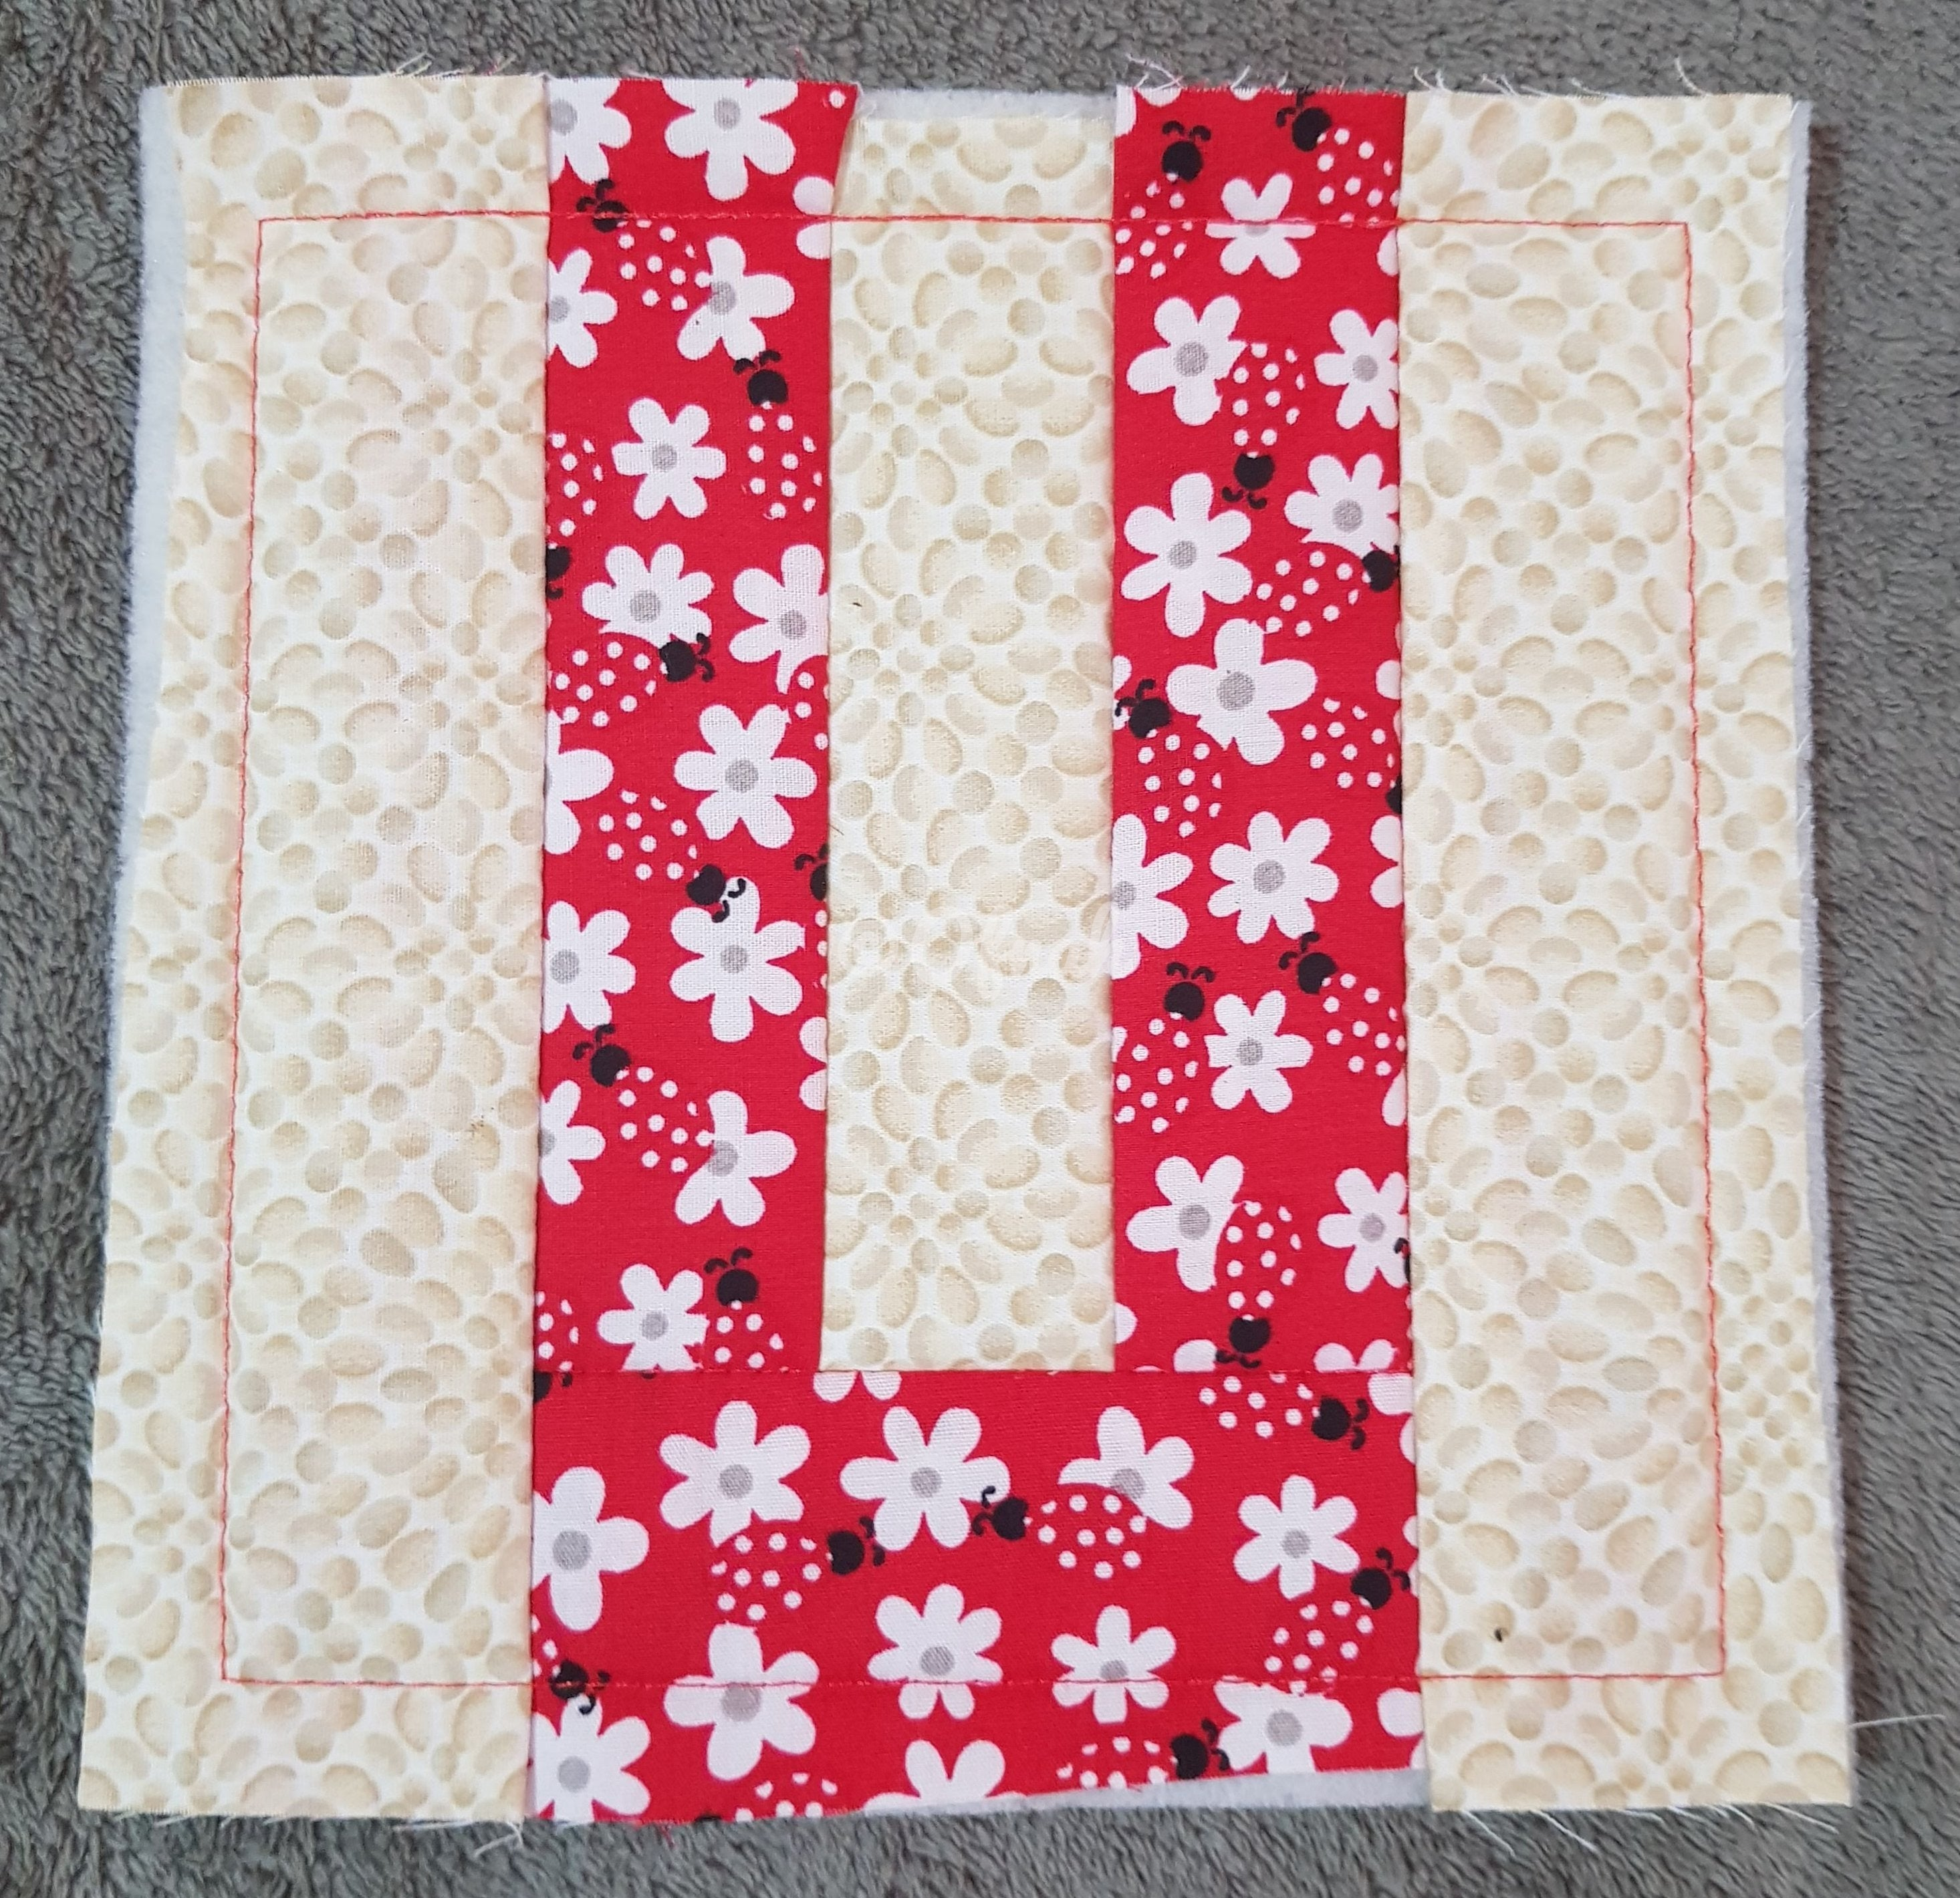 ITH LETTER U QUILT BLOCK